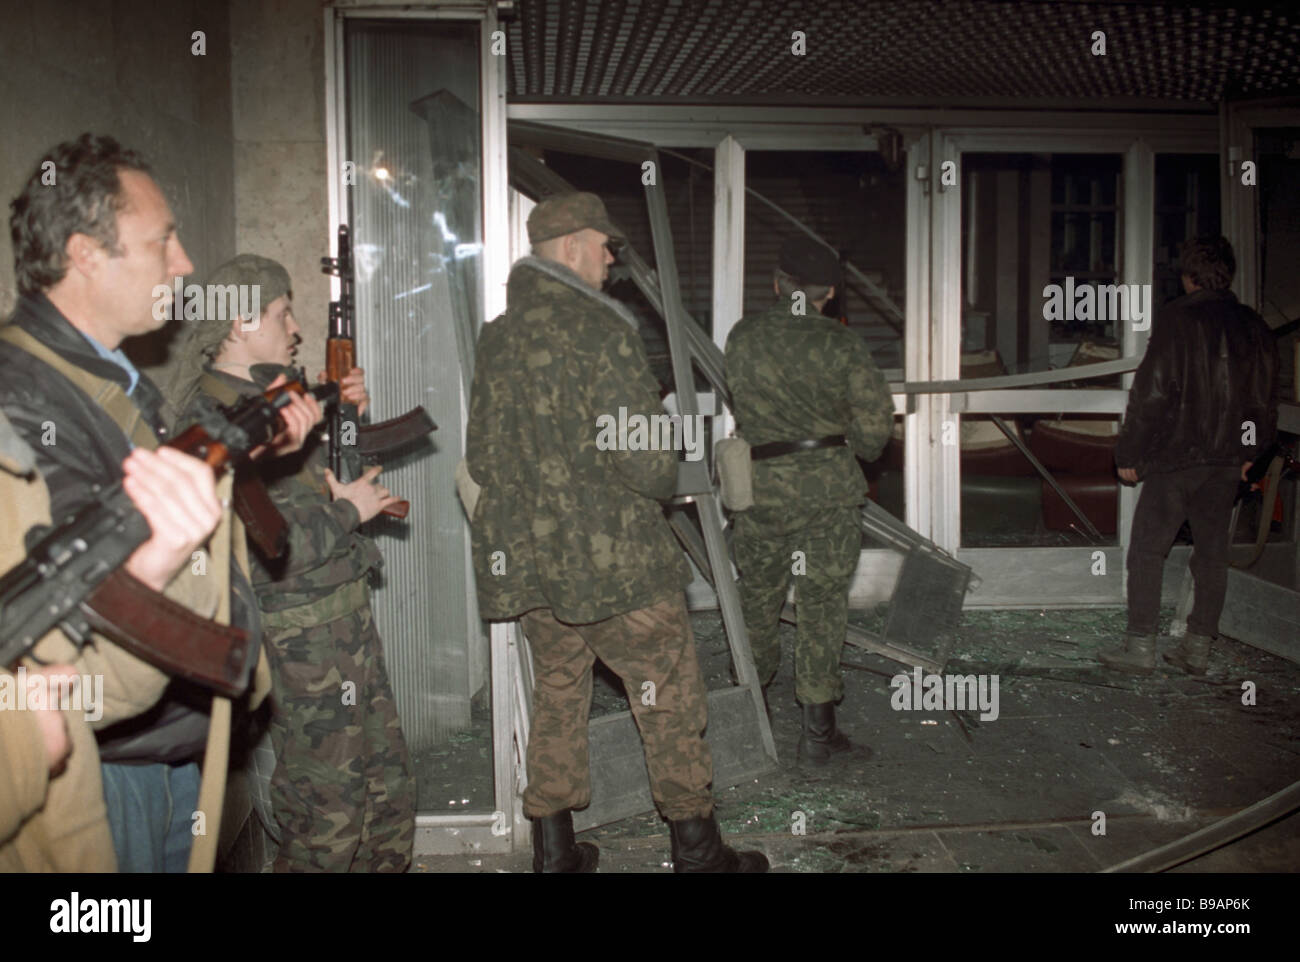 Armed extremes storm Ostankino TV center - Stock Image